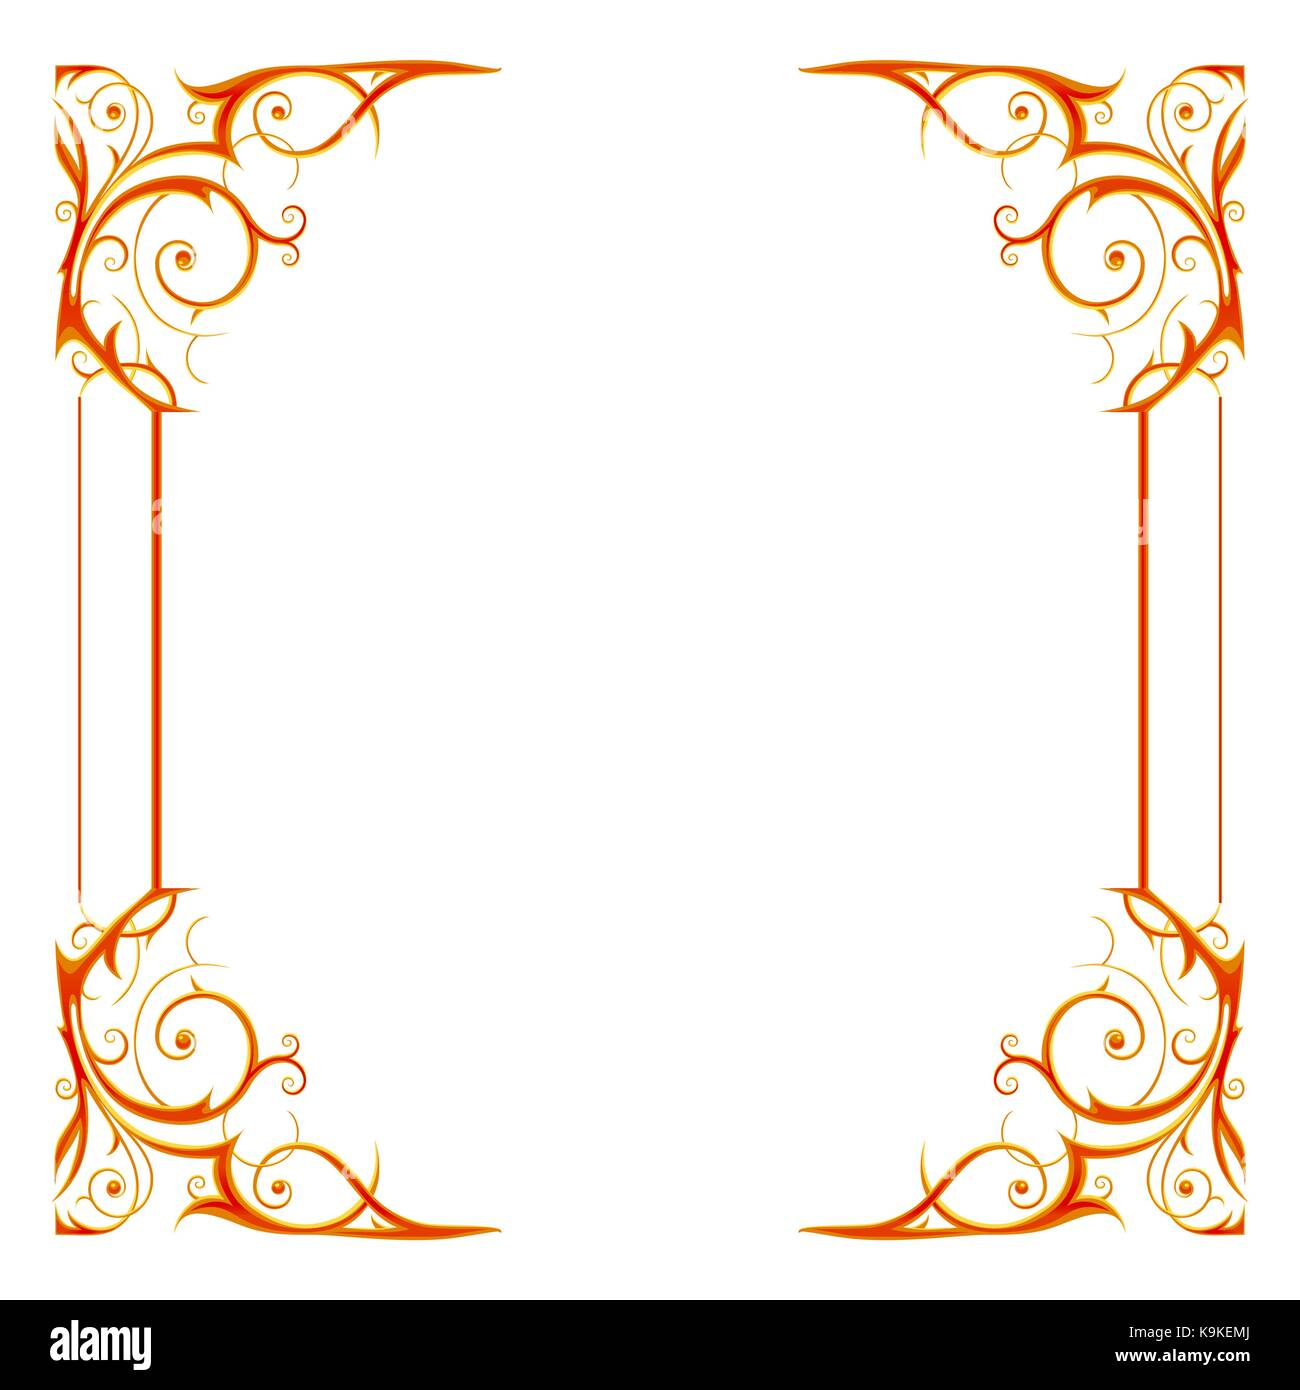 Gold holiday frame isoleted - Stock Vector